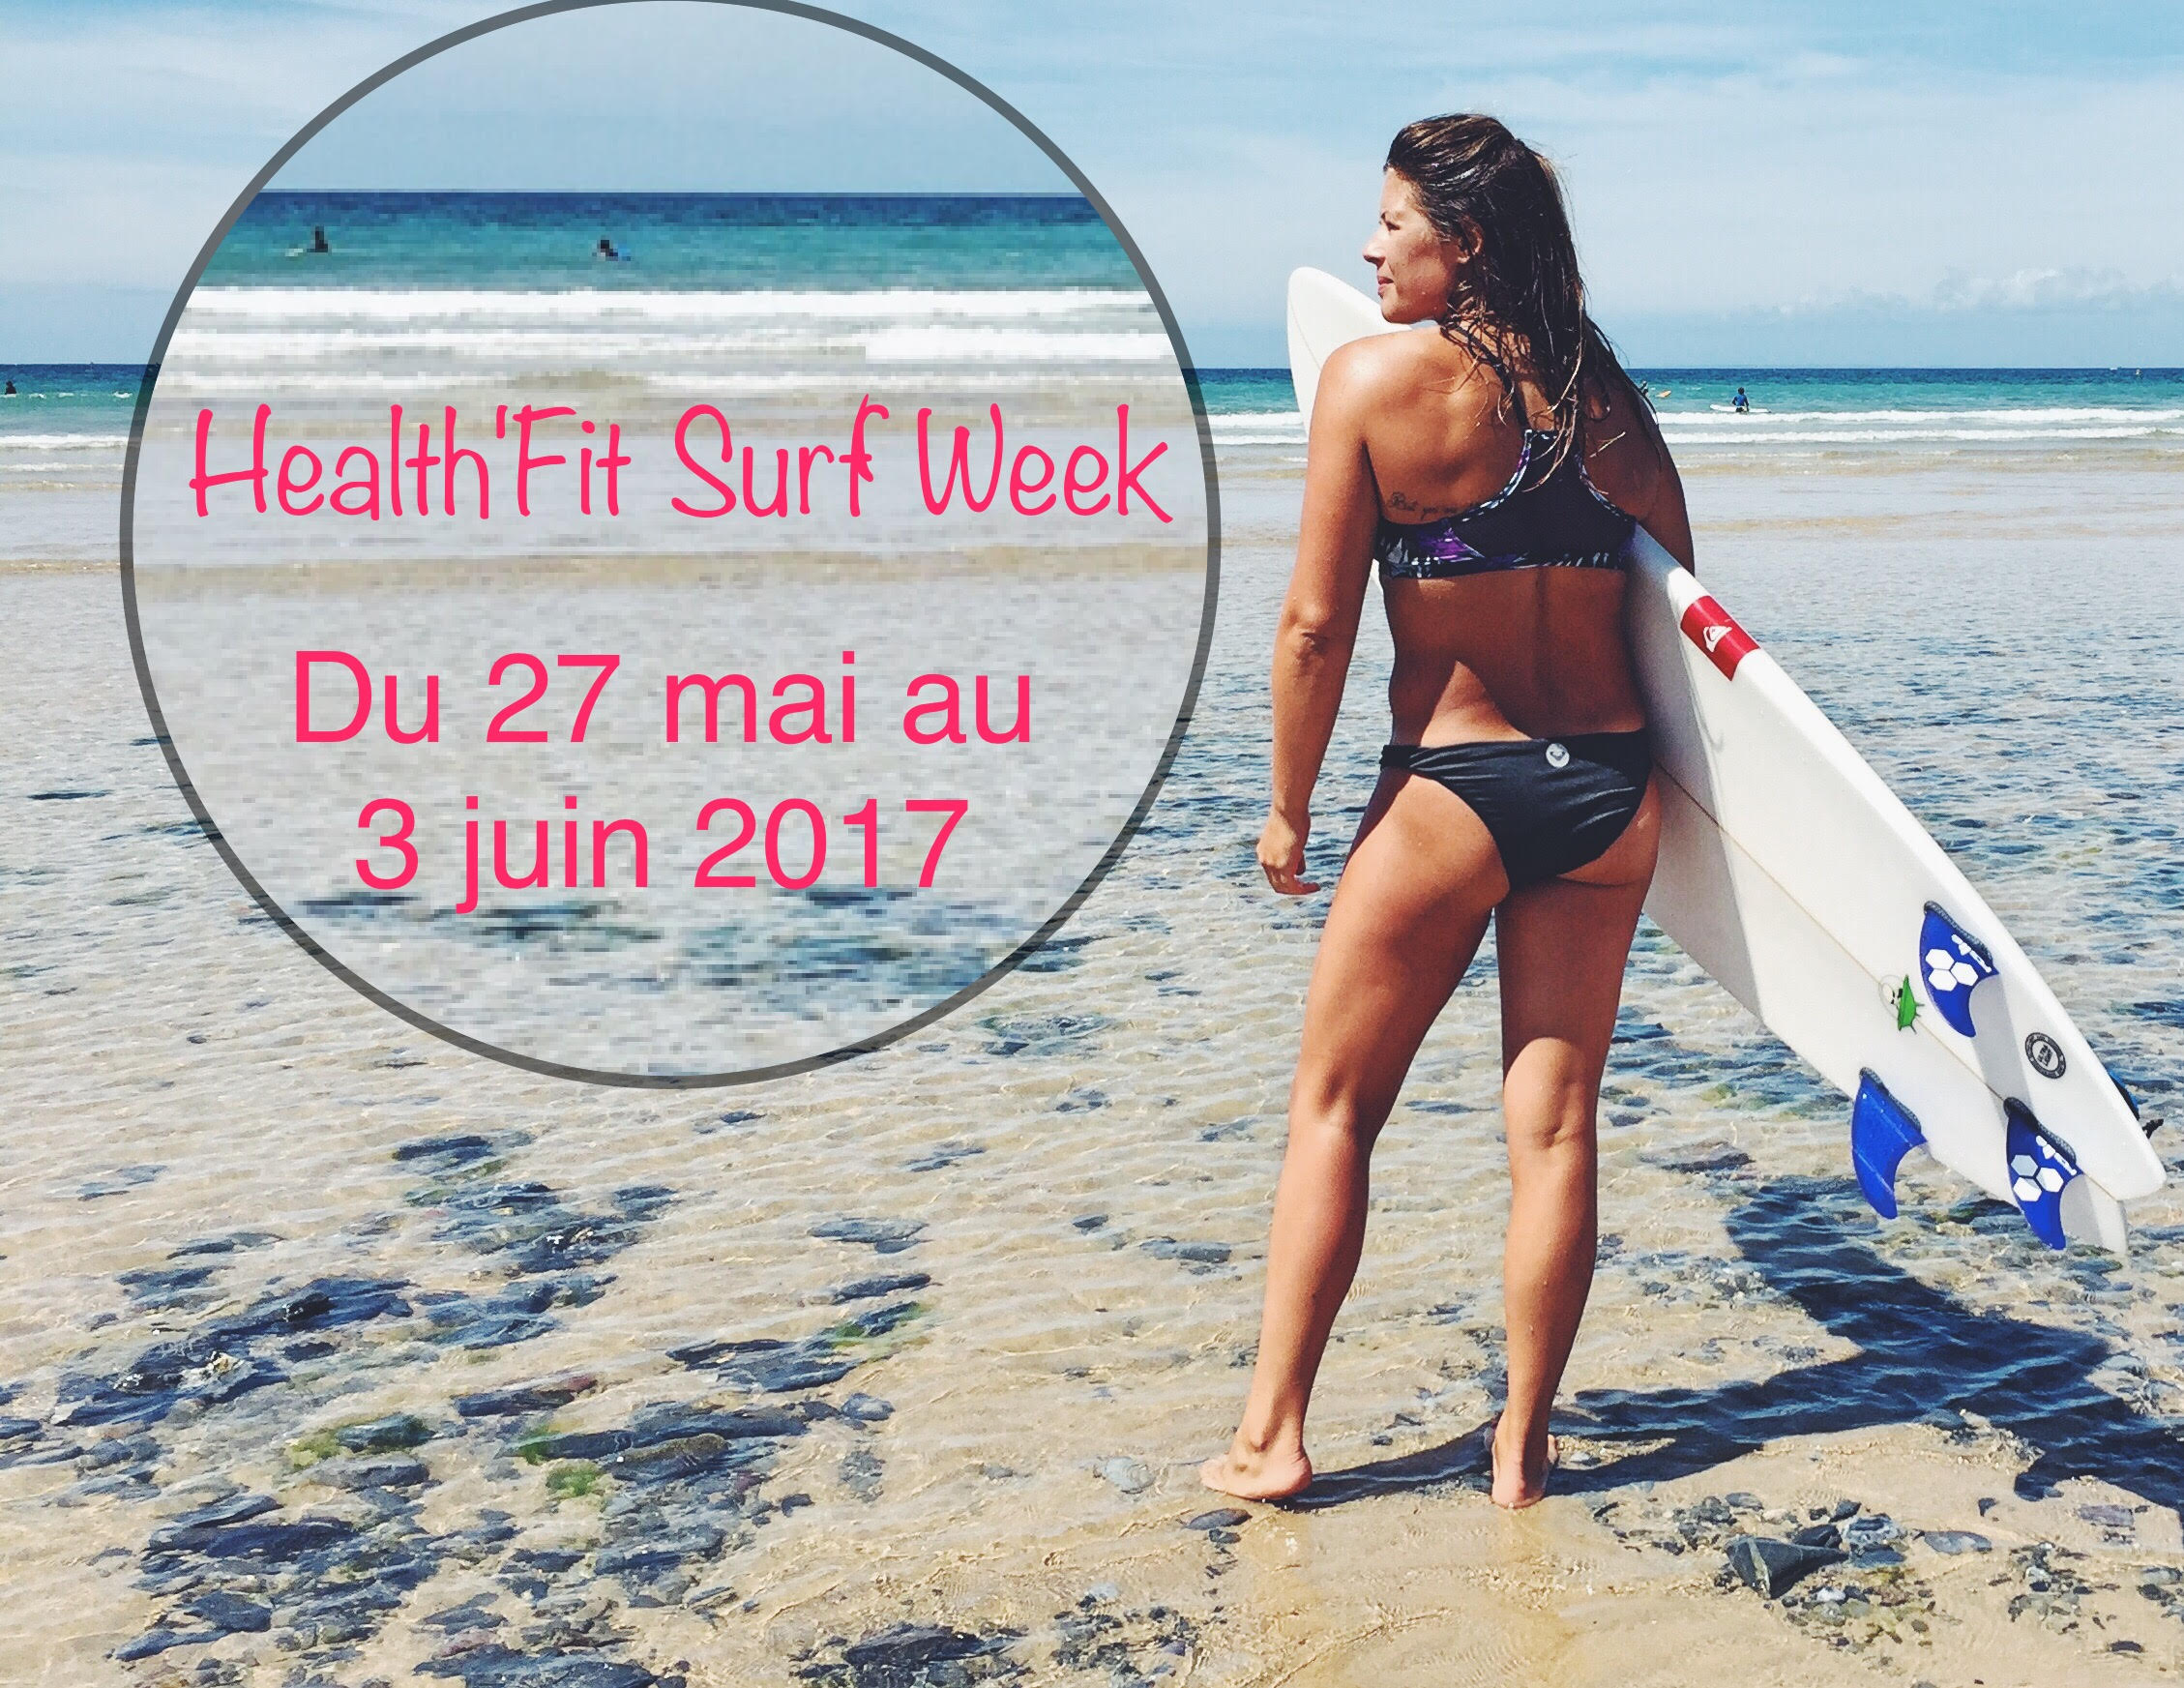 Health'Fit Surf Week image